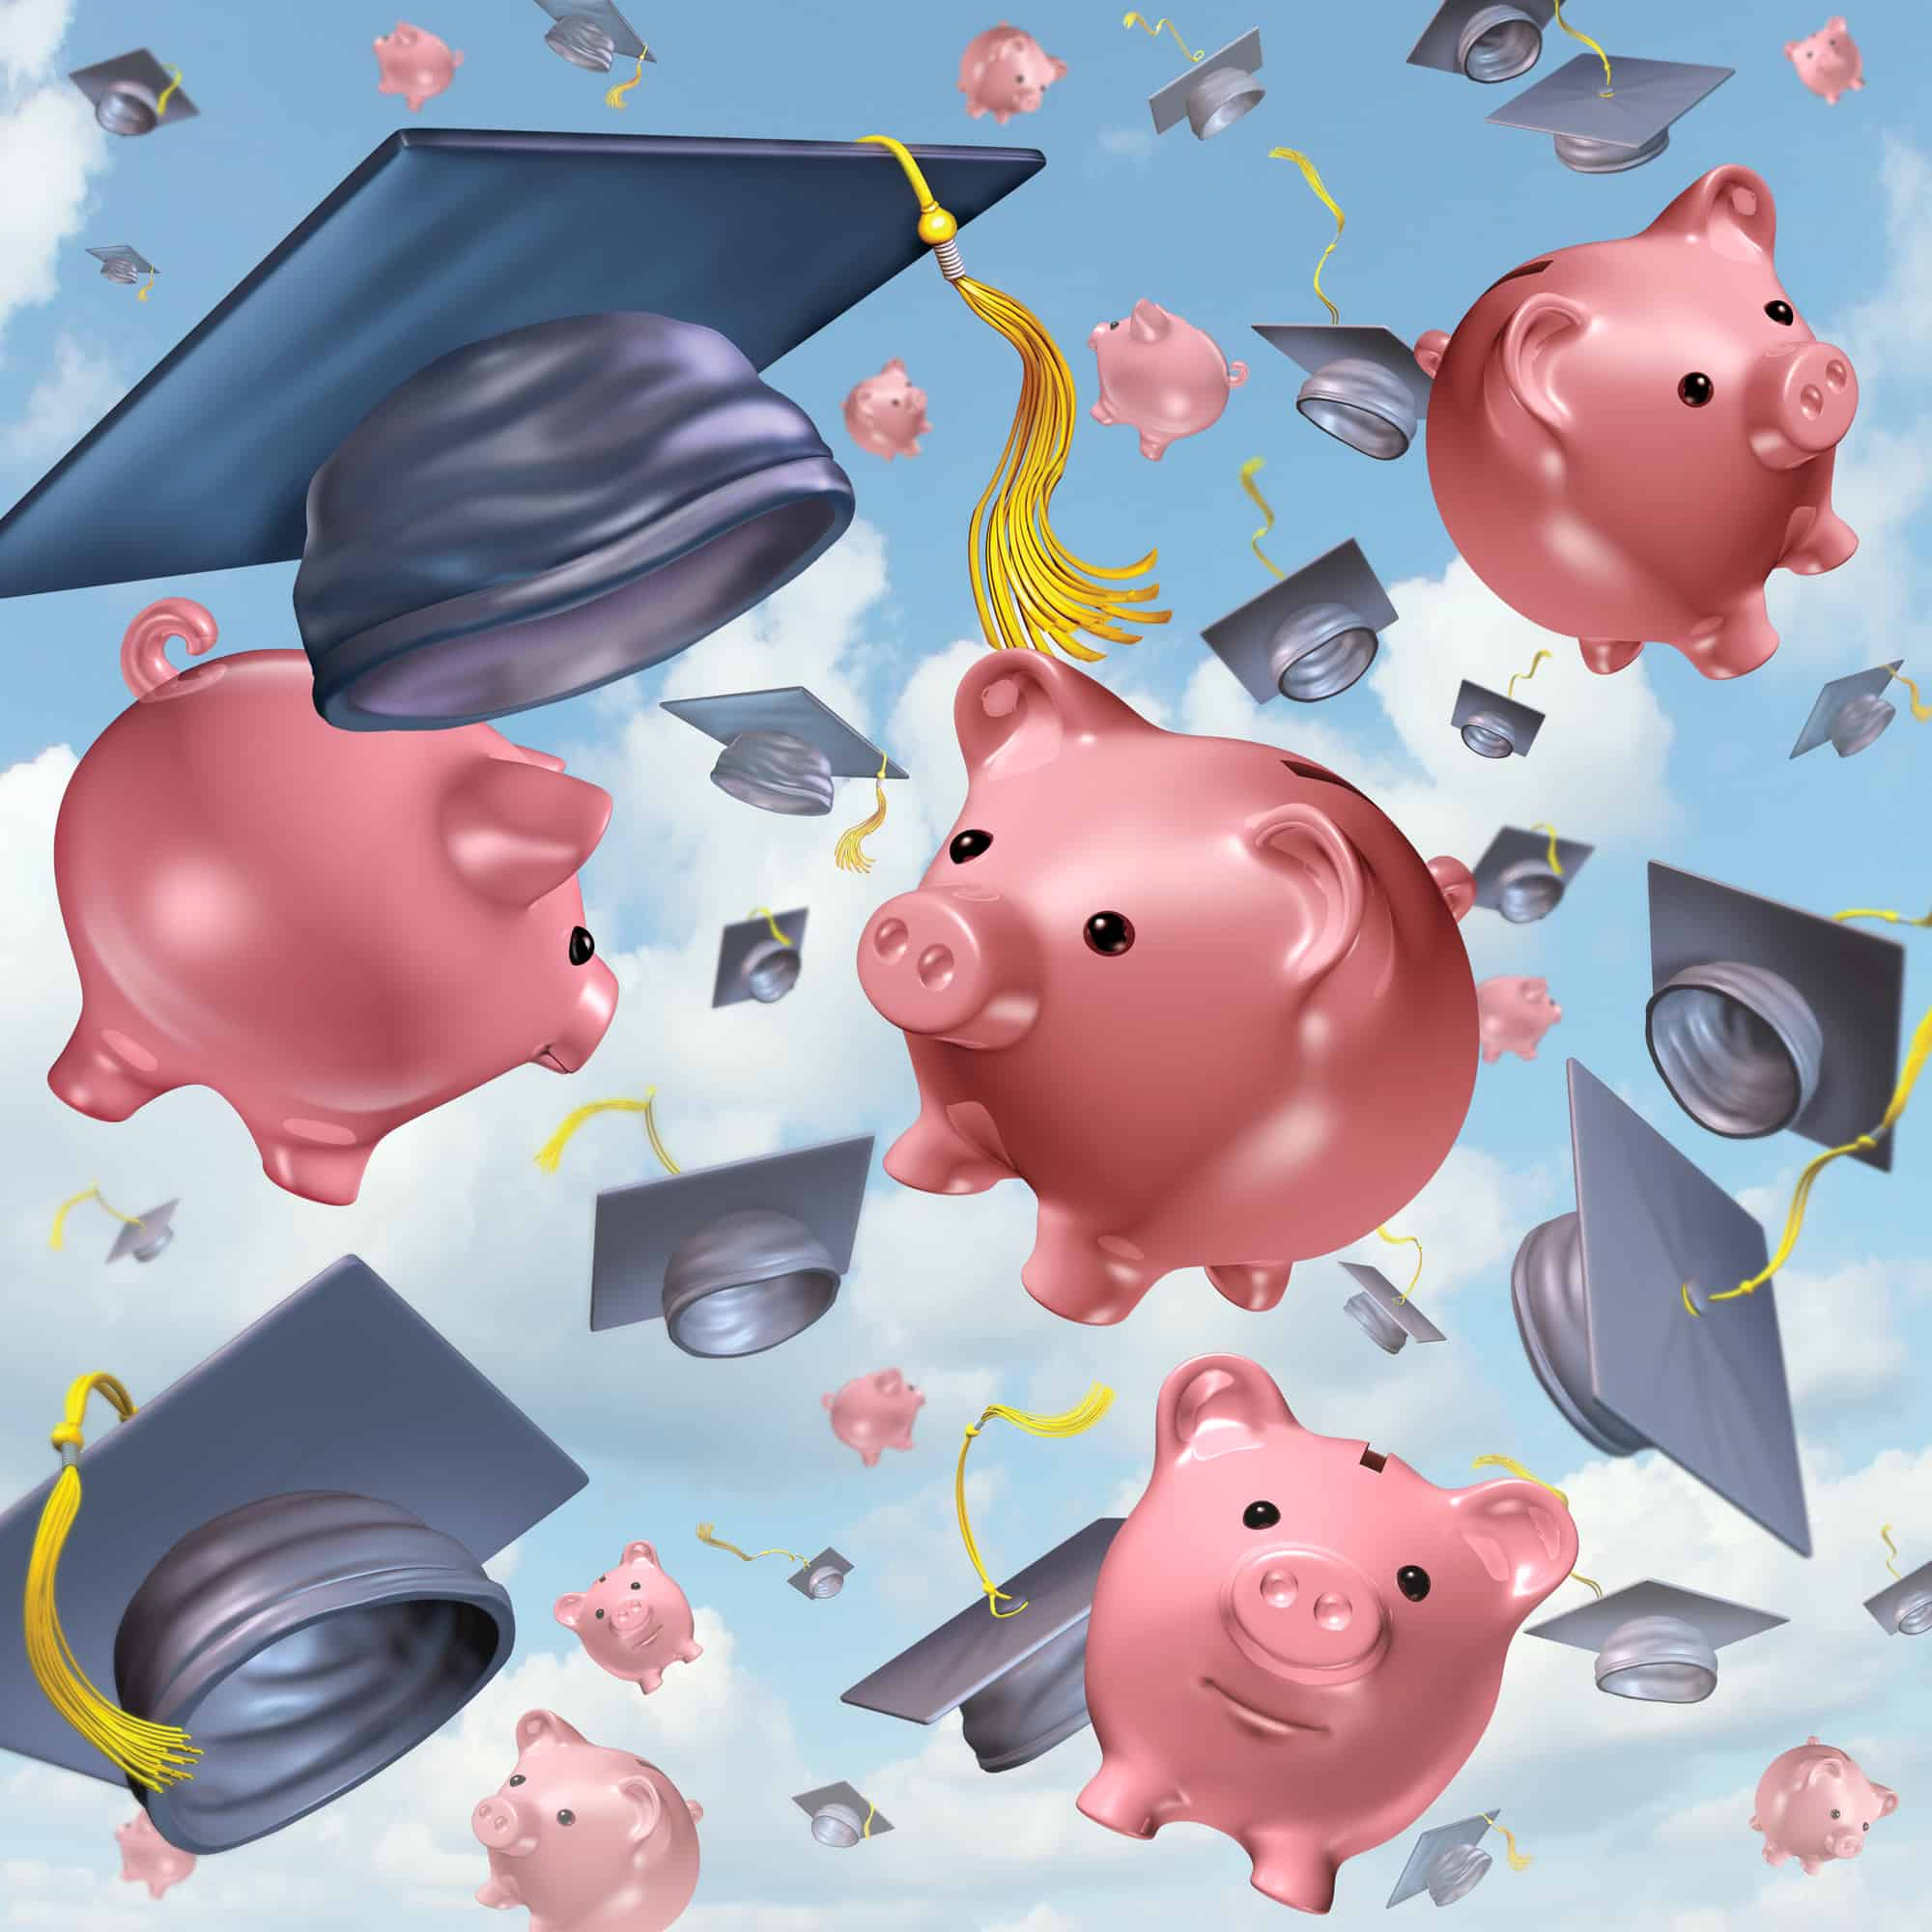 Education savings concept as a group of mortarboards or graduation hats thrown in the air with ceramic piggybanks flying up in the sky as a financial icon and the costs of school tuition and private learning symbol.